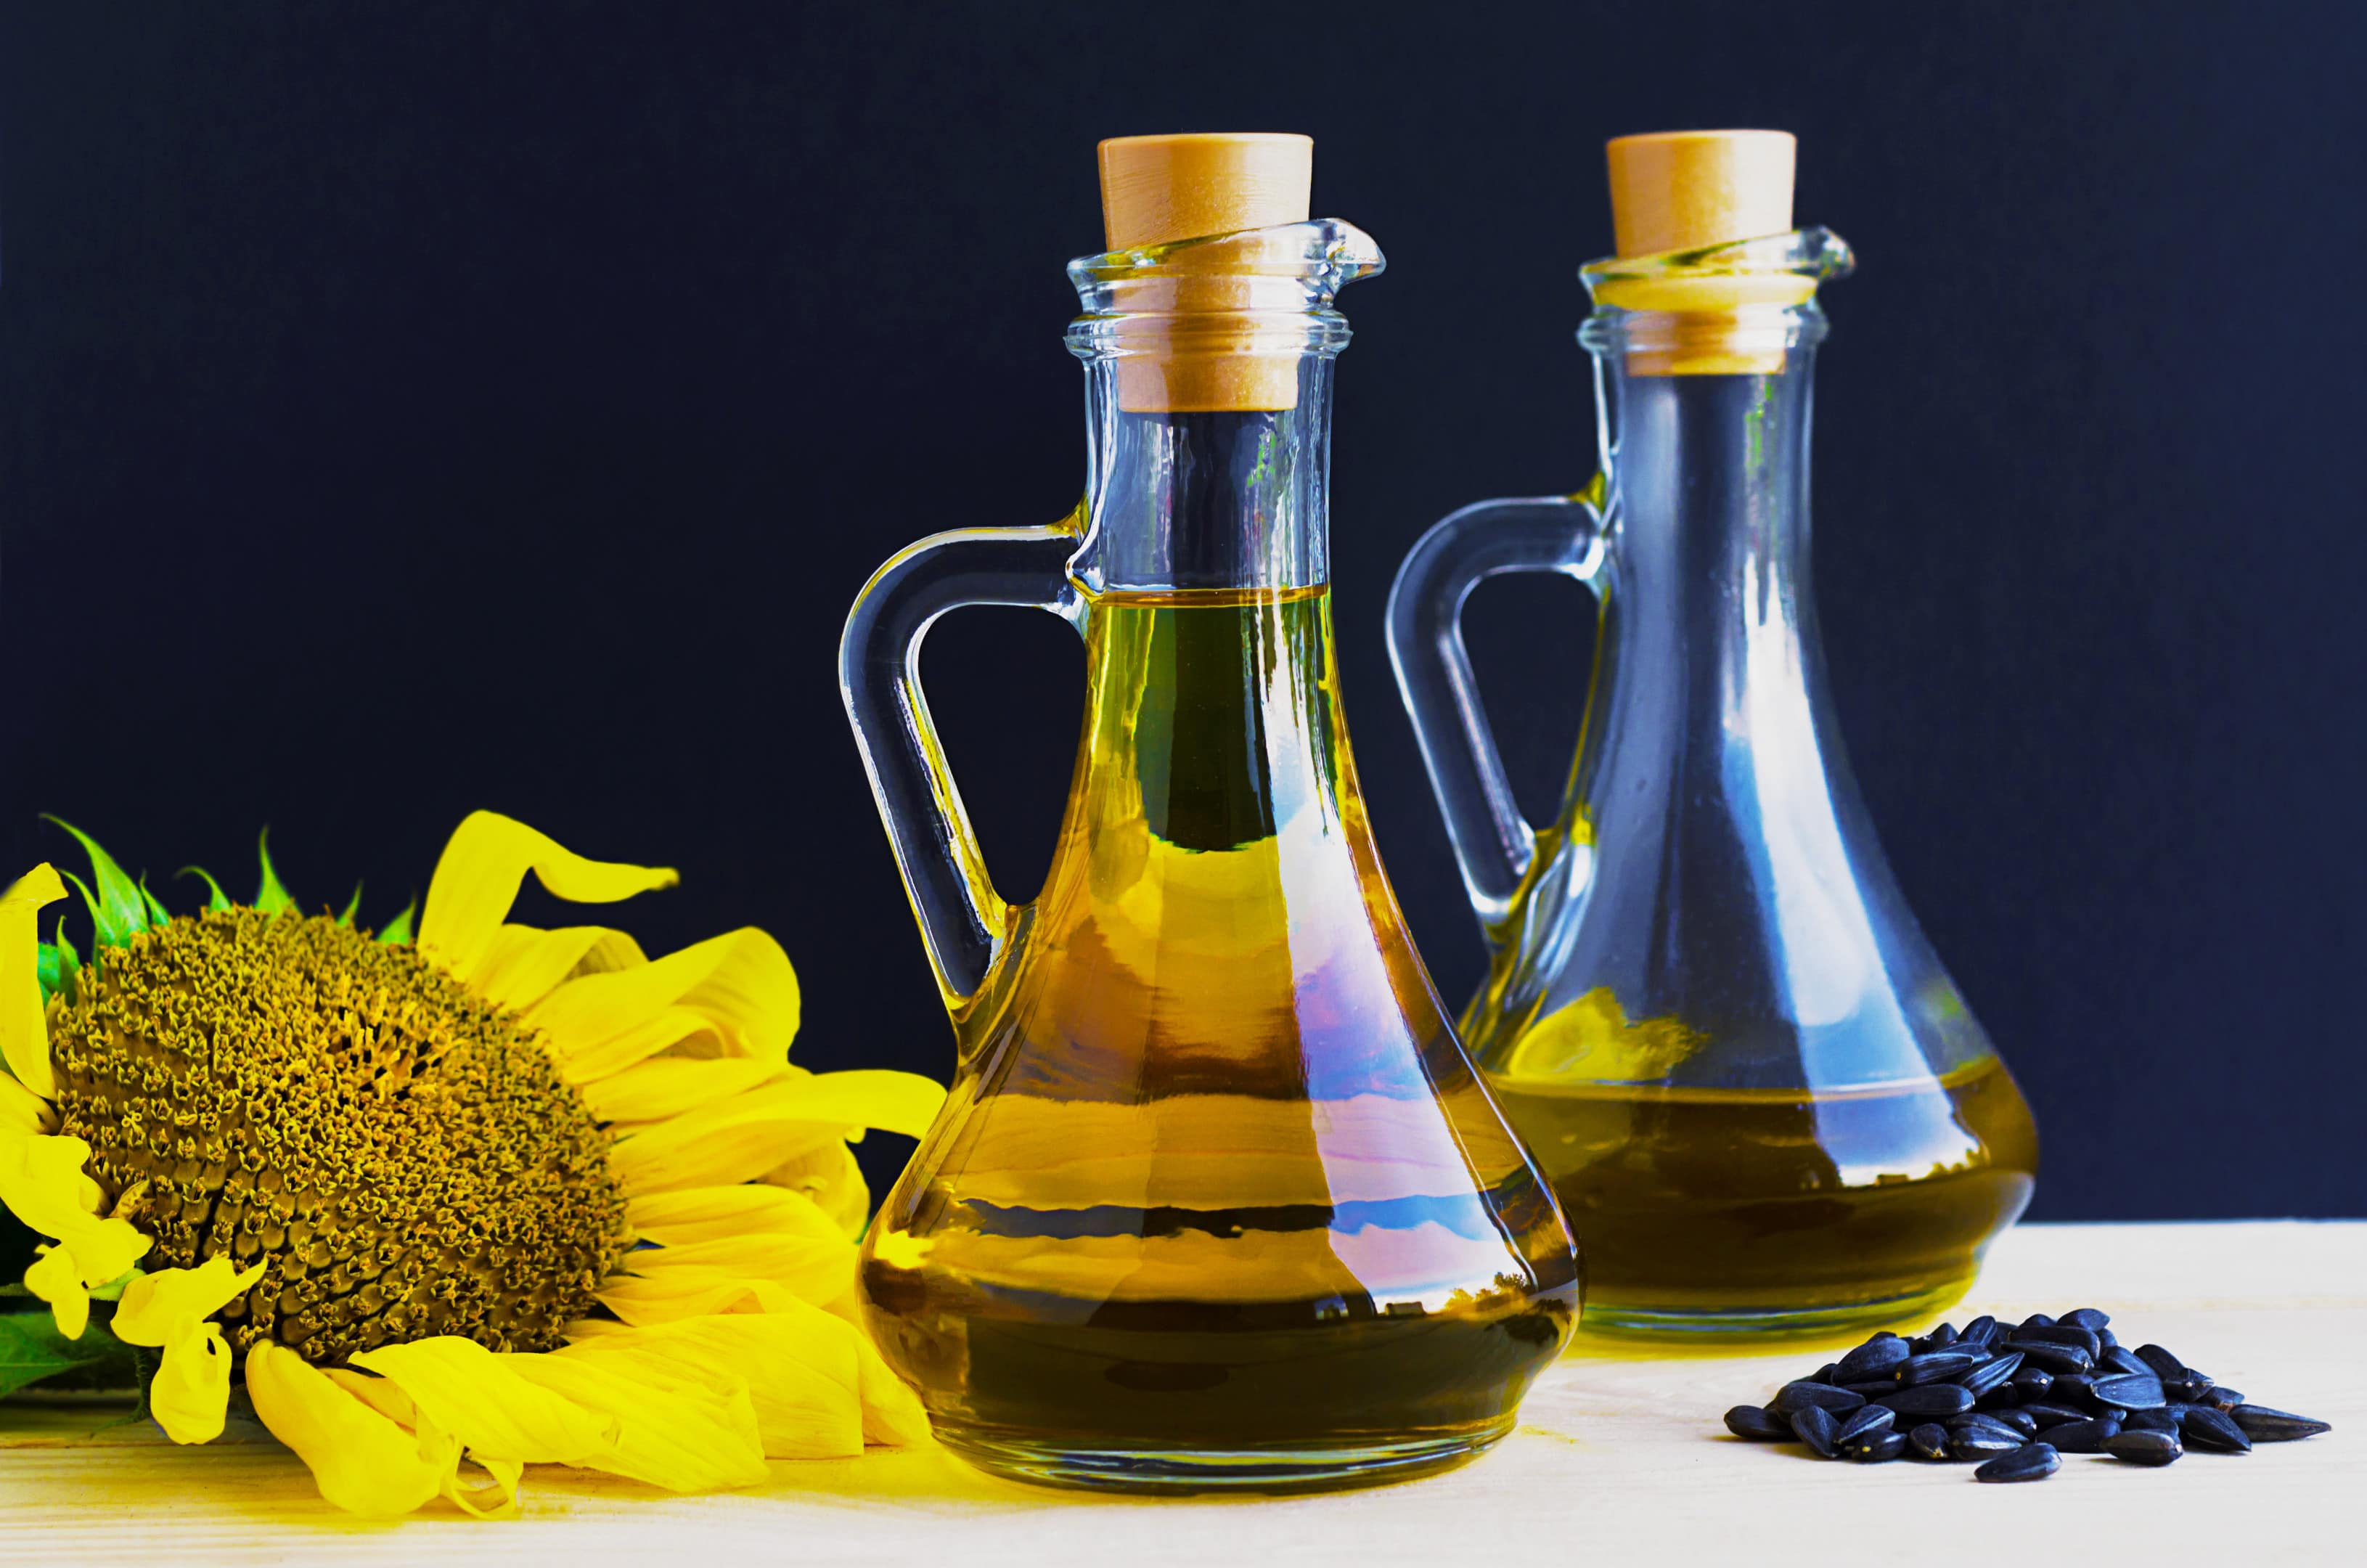 Sunflower oil glass jugs with sunflower and sunflower seeds on table